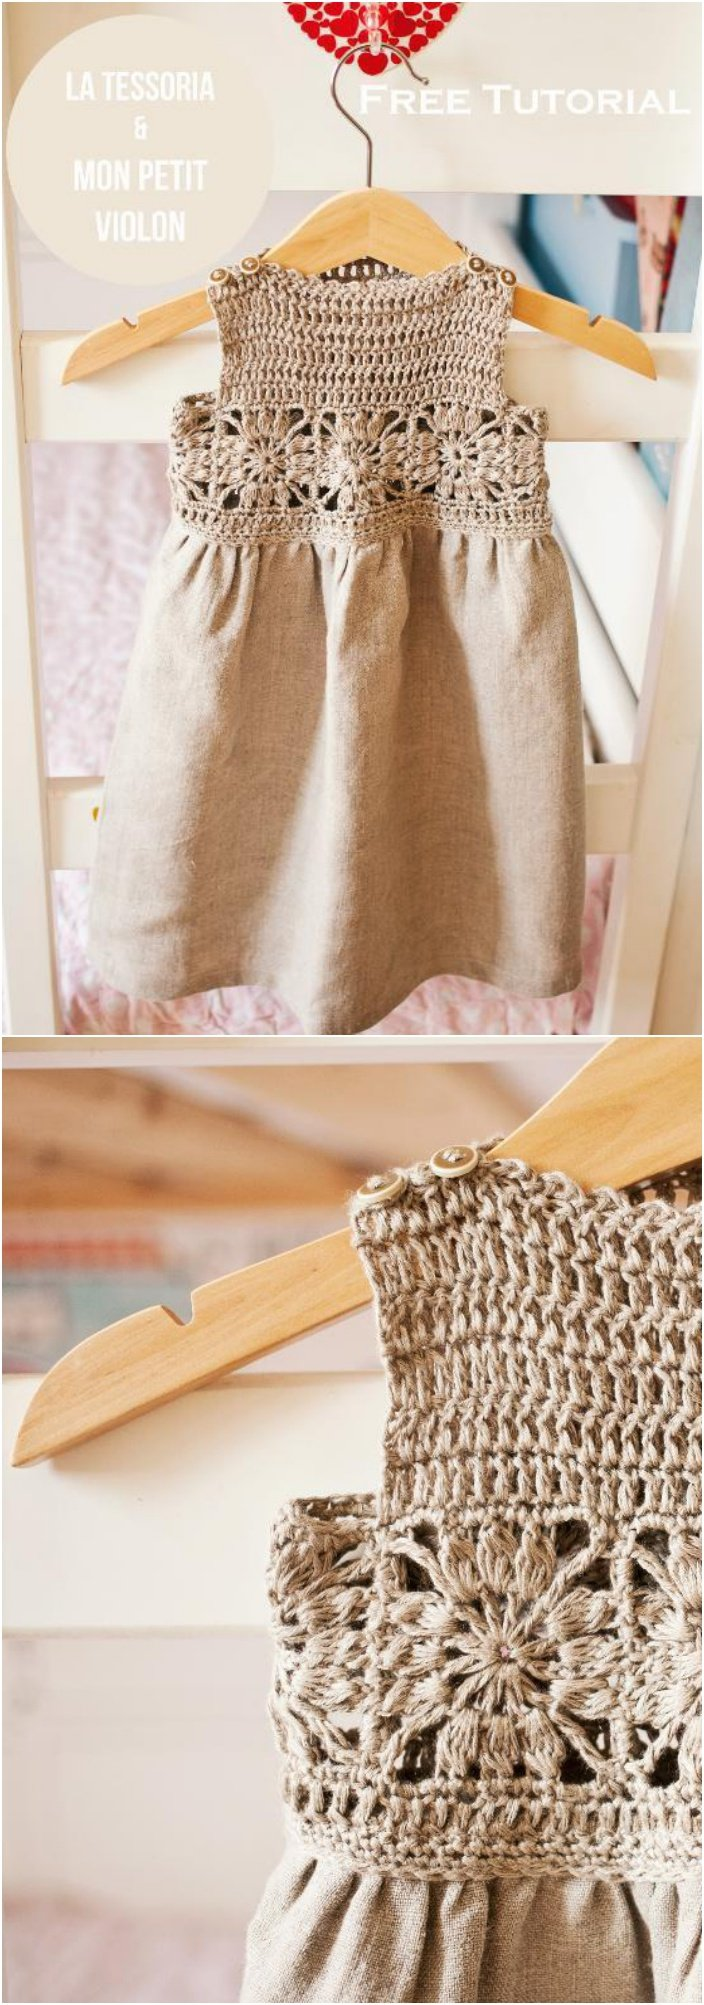 Free Crochet Granny Square Clothing Patterns : 10+ Free Crochet and Fabric Dress Patterns - Page 2 of 3